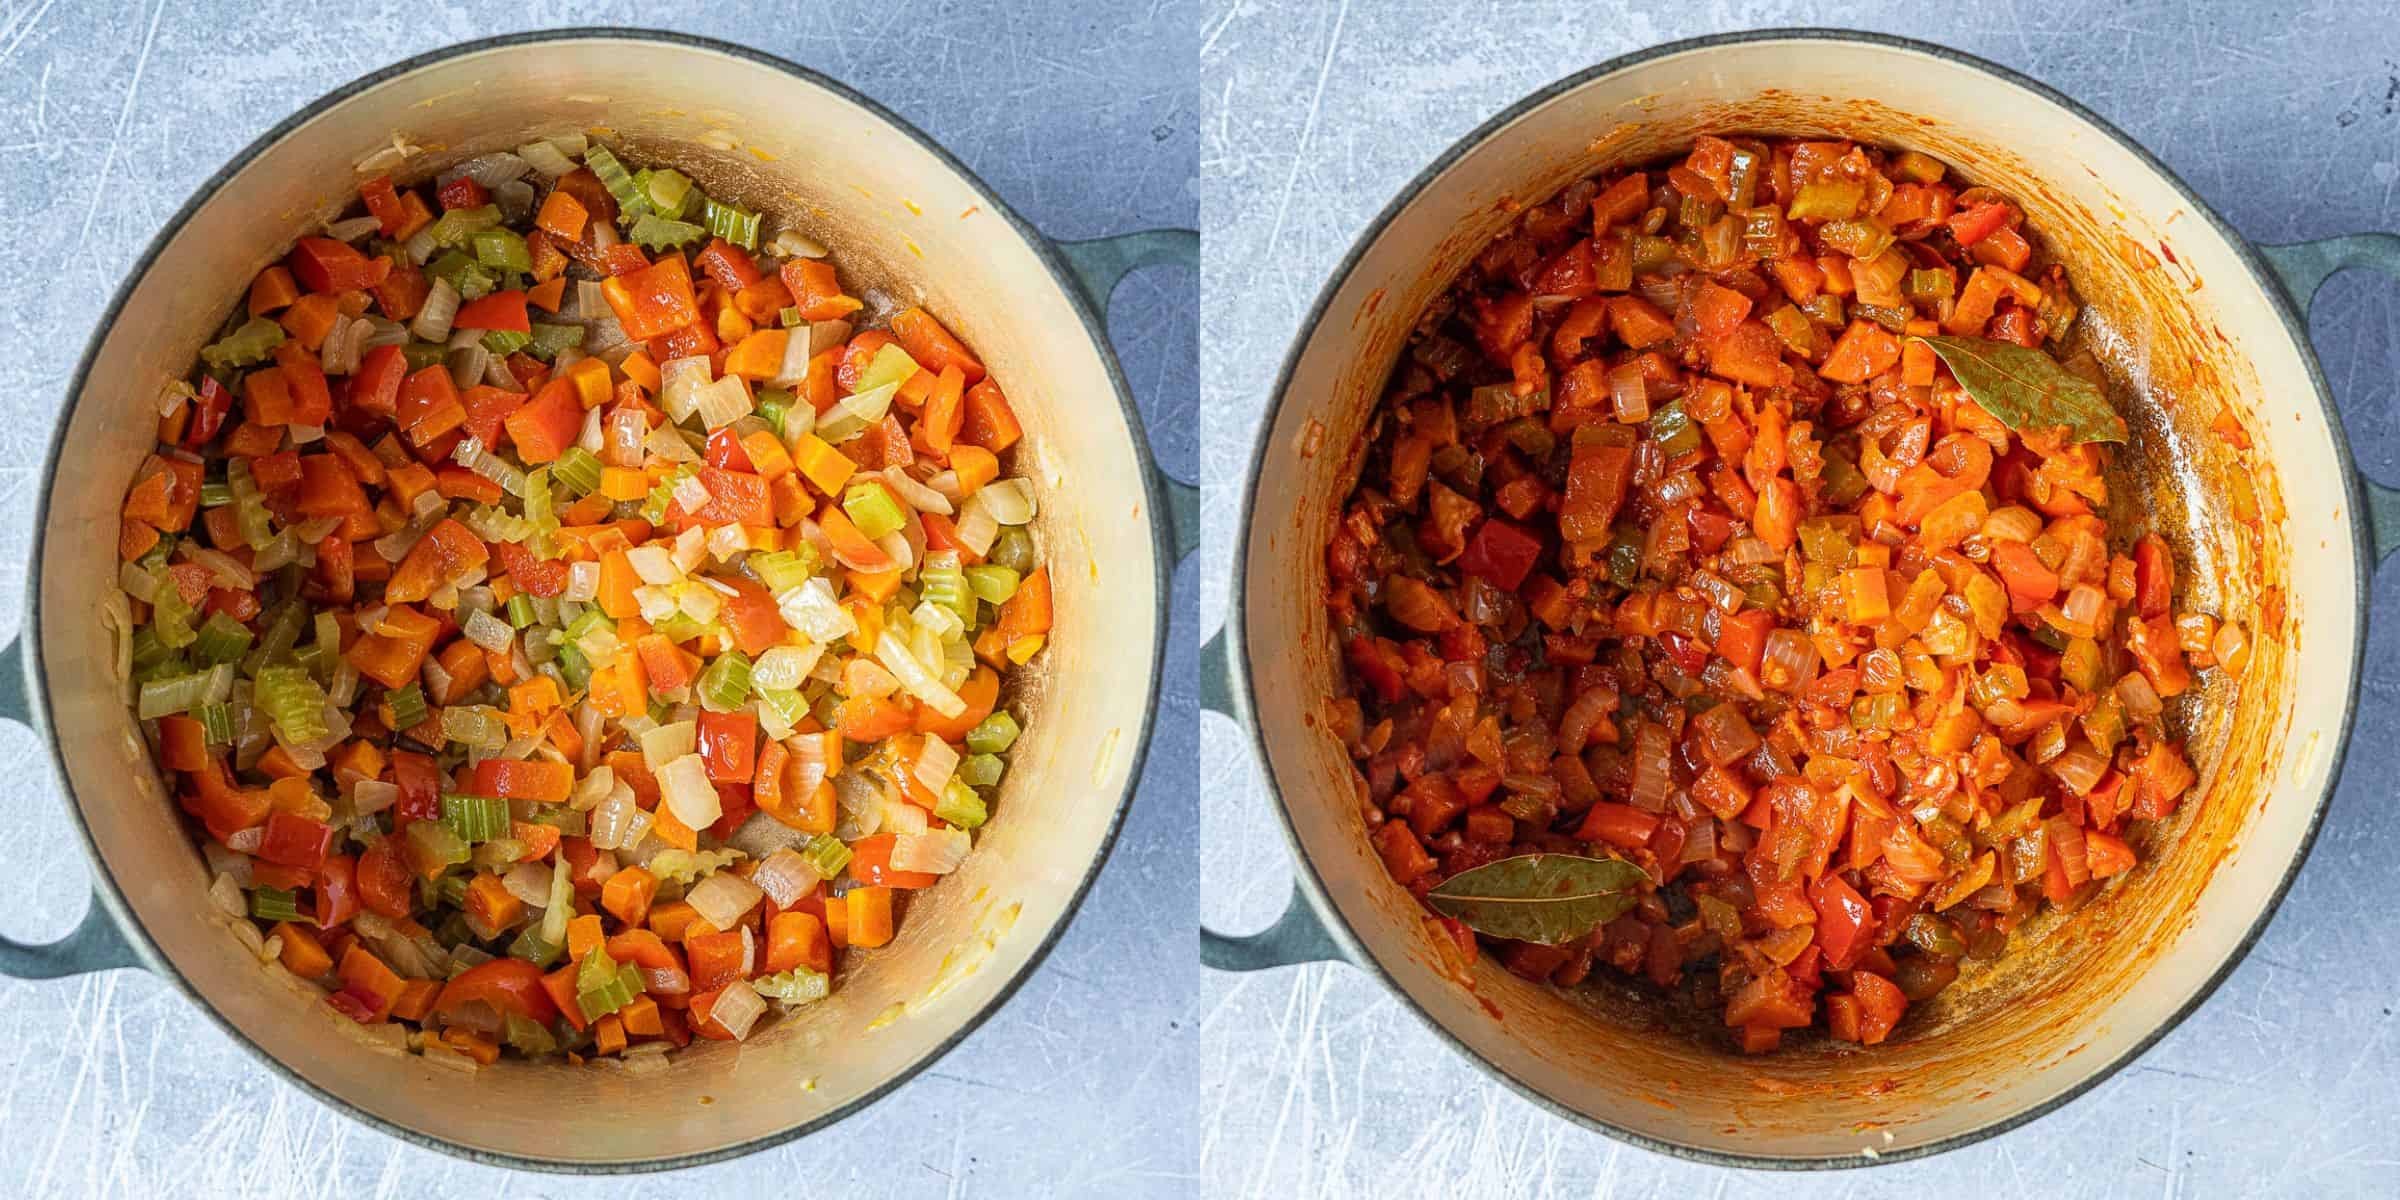 Step 1, a two image collage of frying the vegetables.